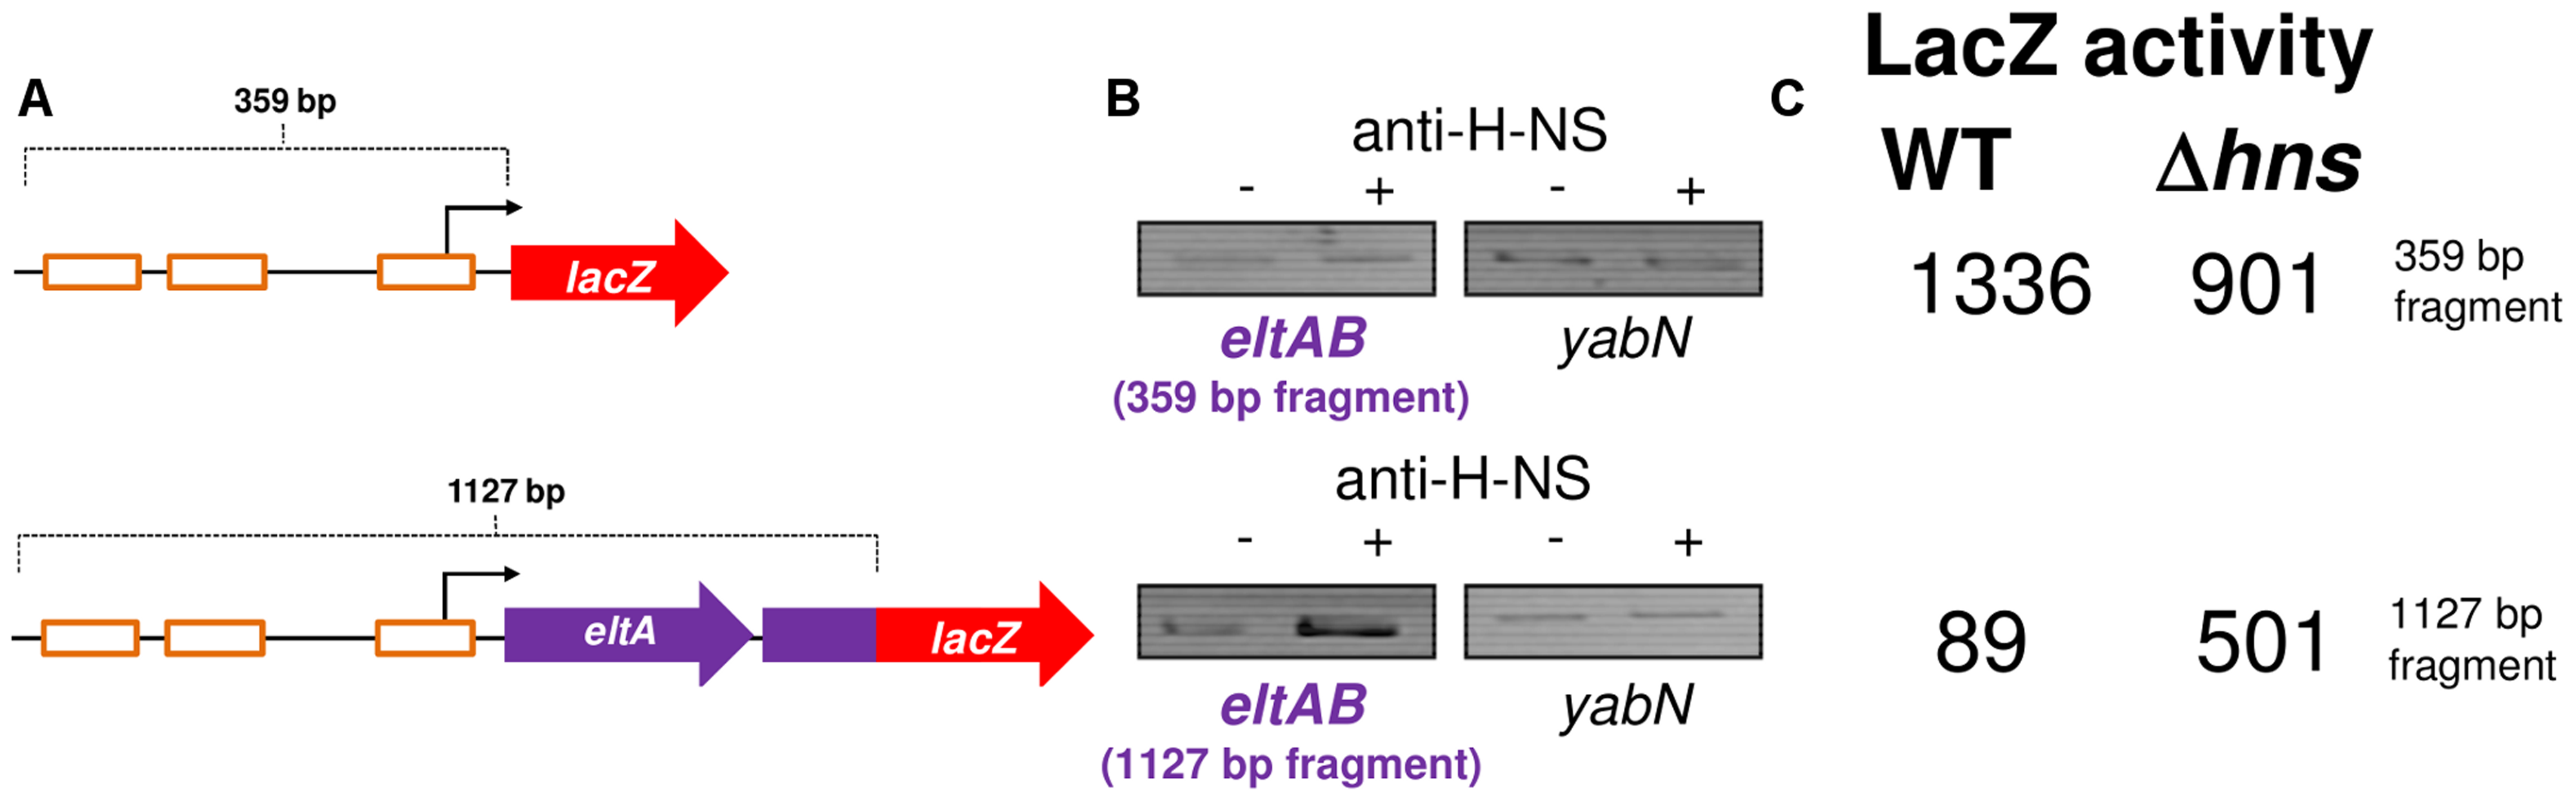 The <i>eltAB</i> promoter is directly repressed by H-NS.